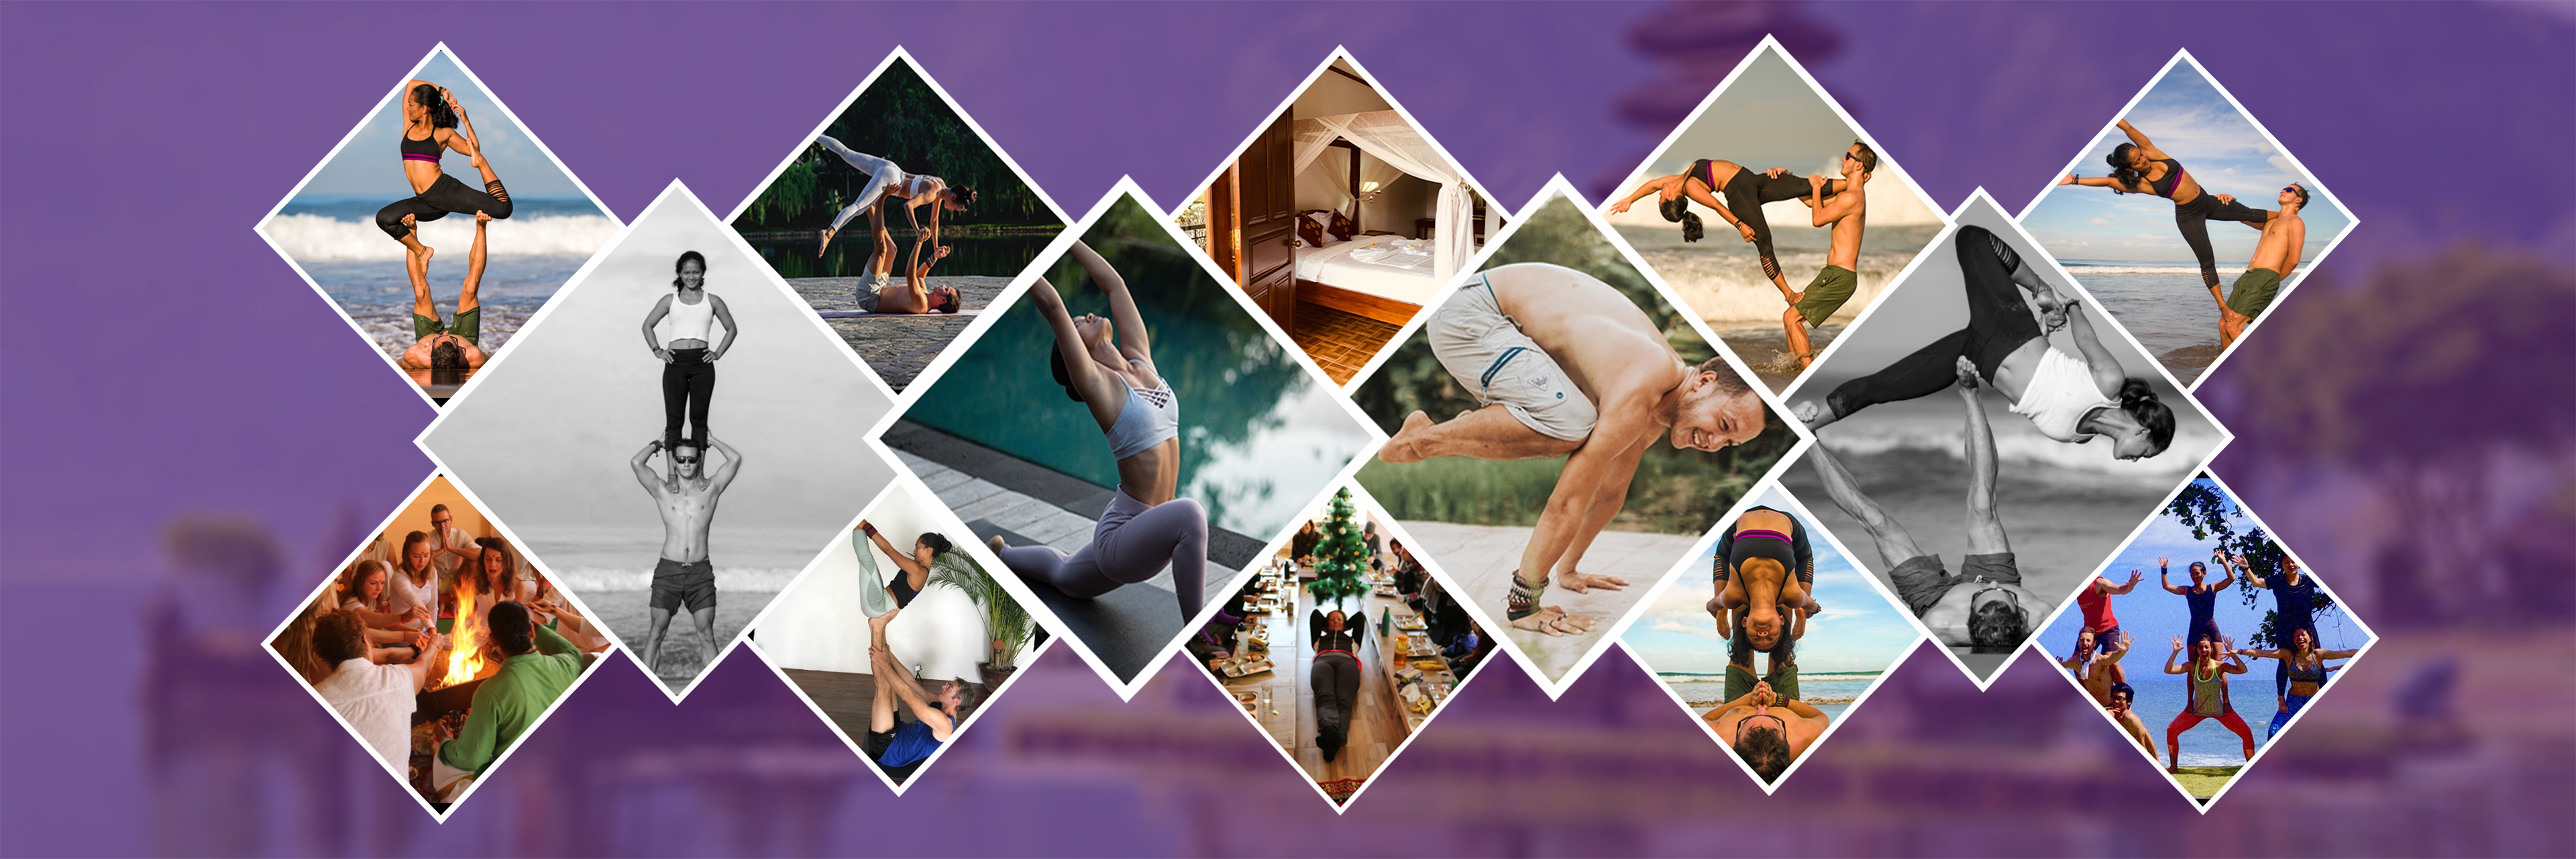 200 Hour Yoga Teacher Training in Bali (Multi-style Yoga TTC) - 24 Days